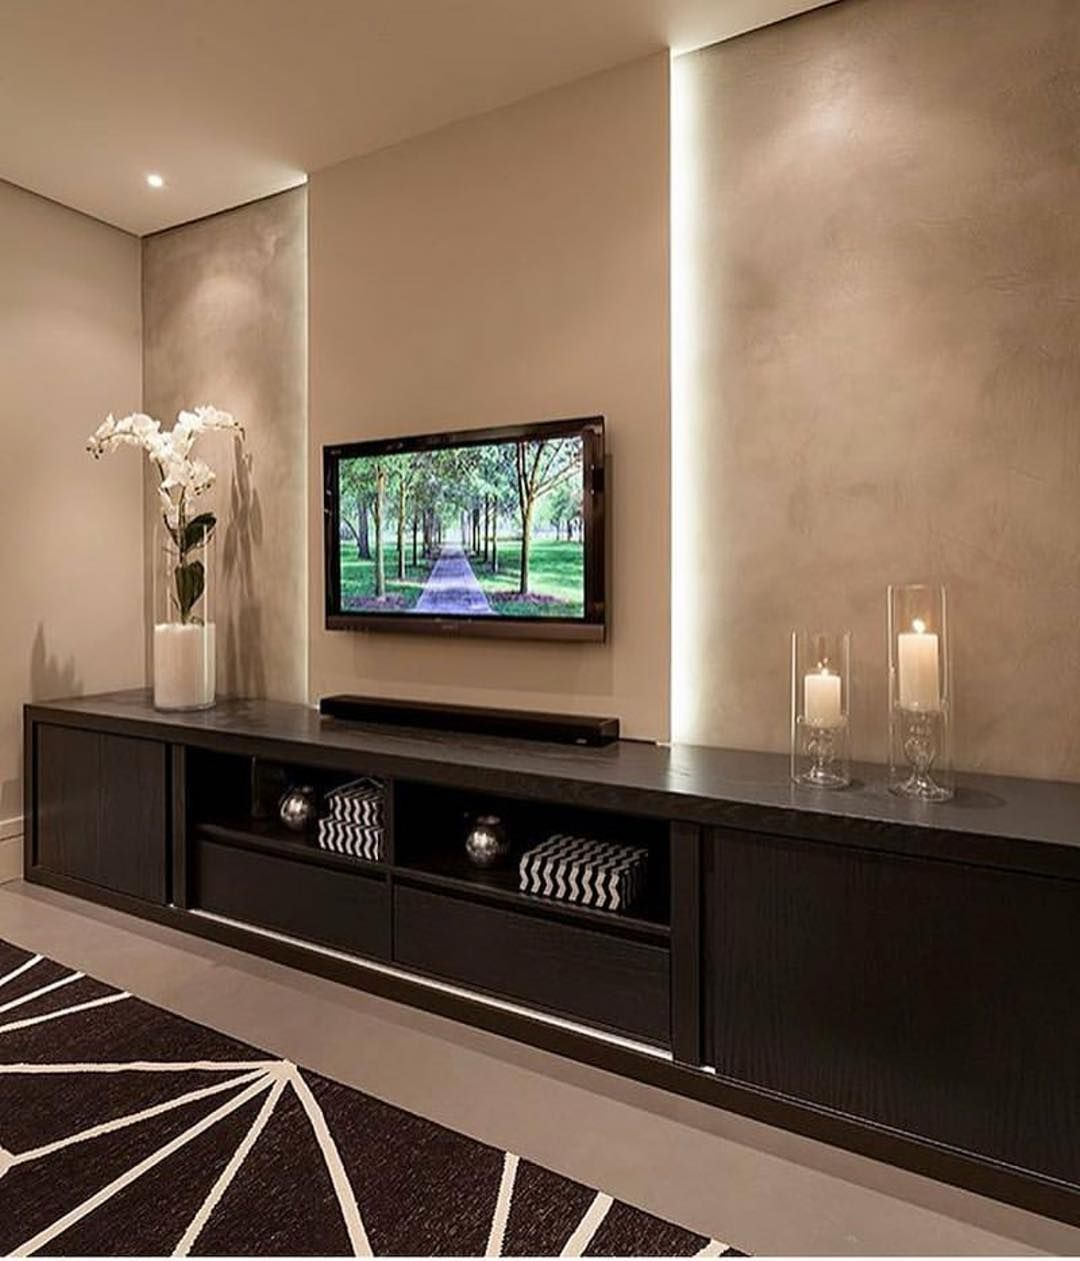 Carol Brechzin Home Tips For Home Theater Room Design Ideas: 756.8k Followers, 42 Following, 3,702 Posts